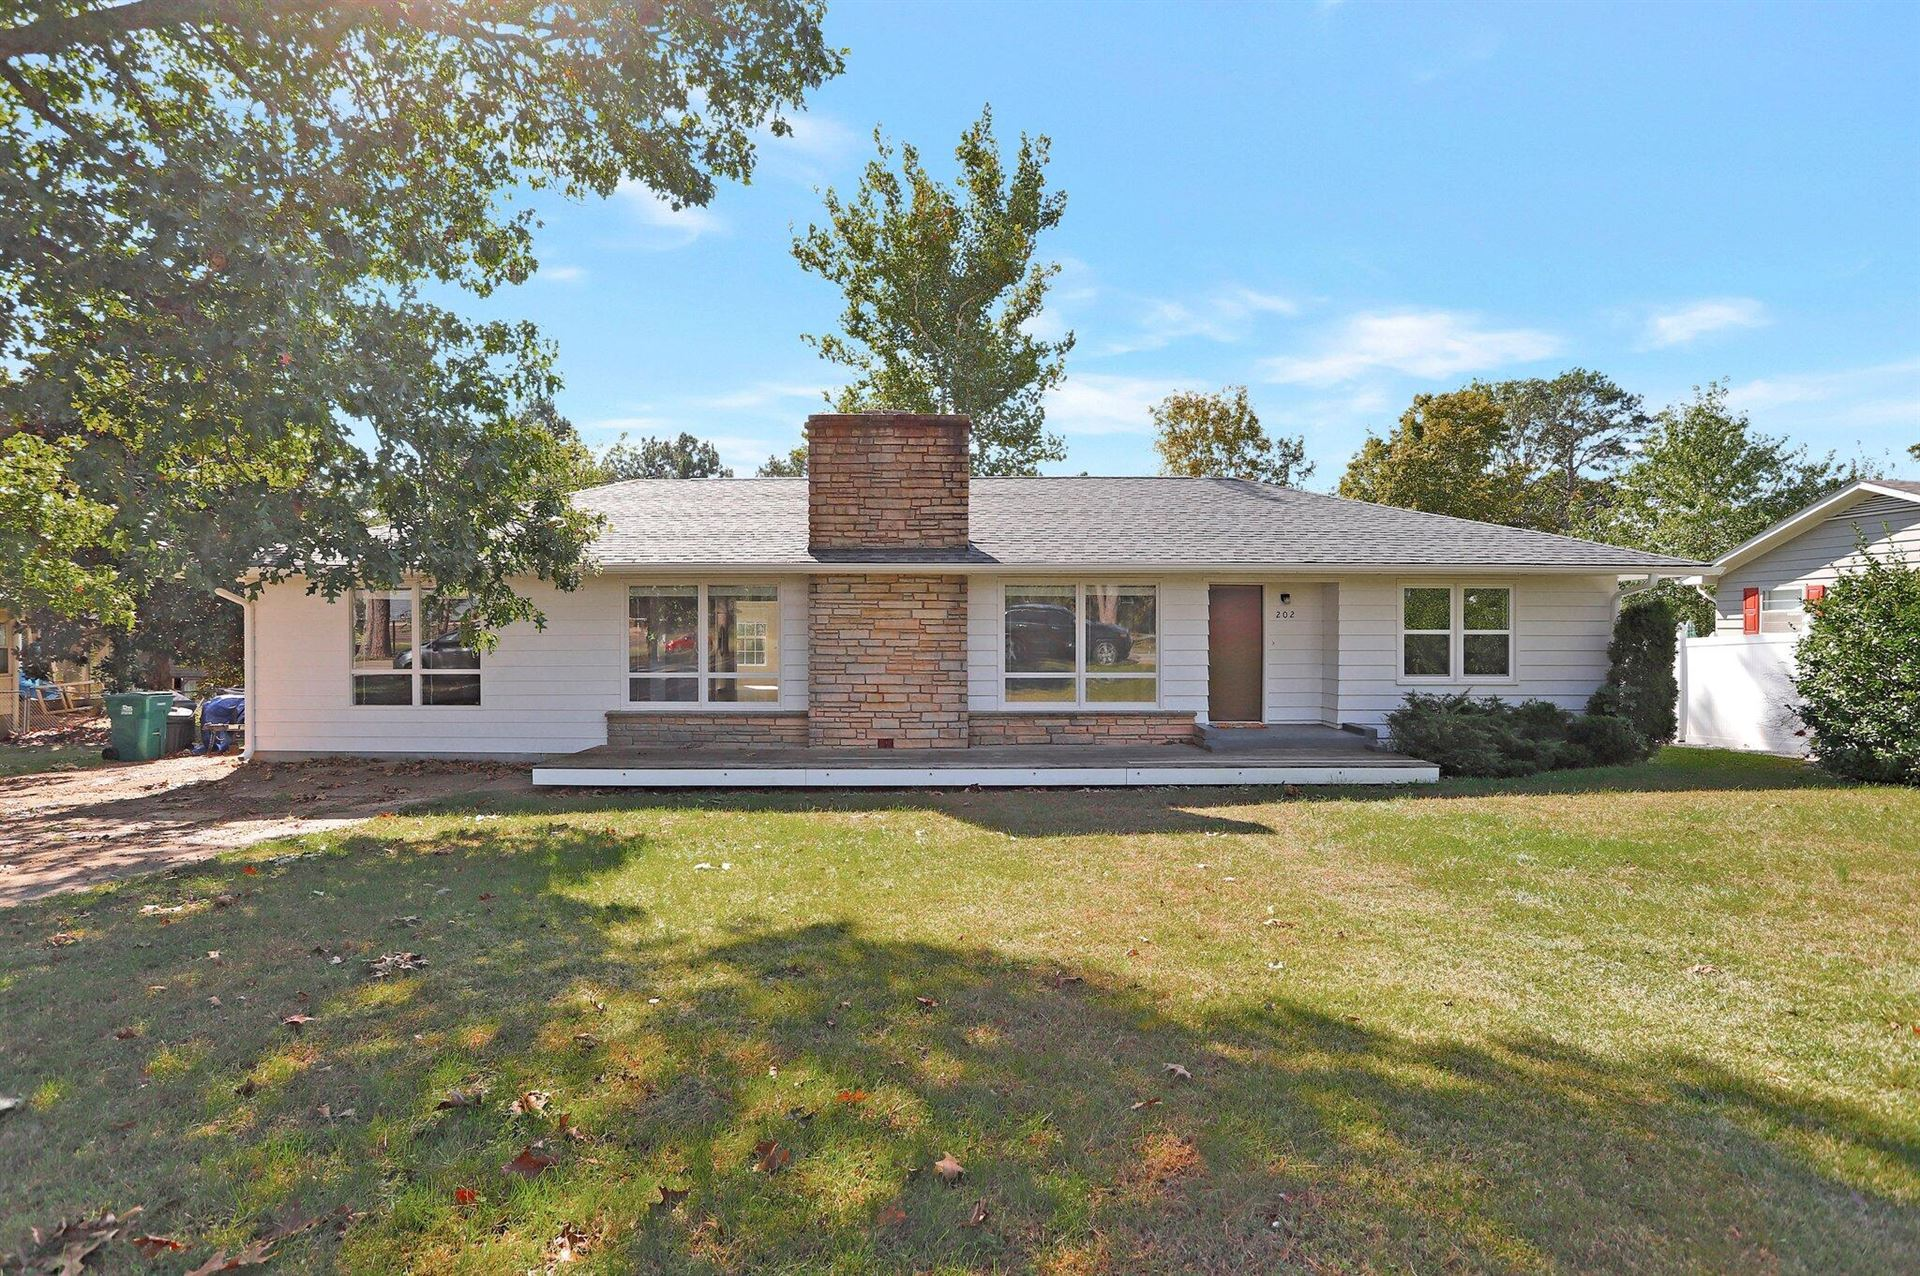 Photo of 202 West 10th Street, Willow Springs, MO 65793 (MLS # 60203784)